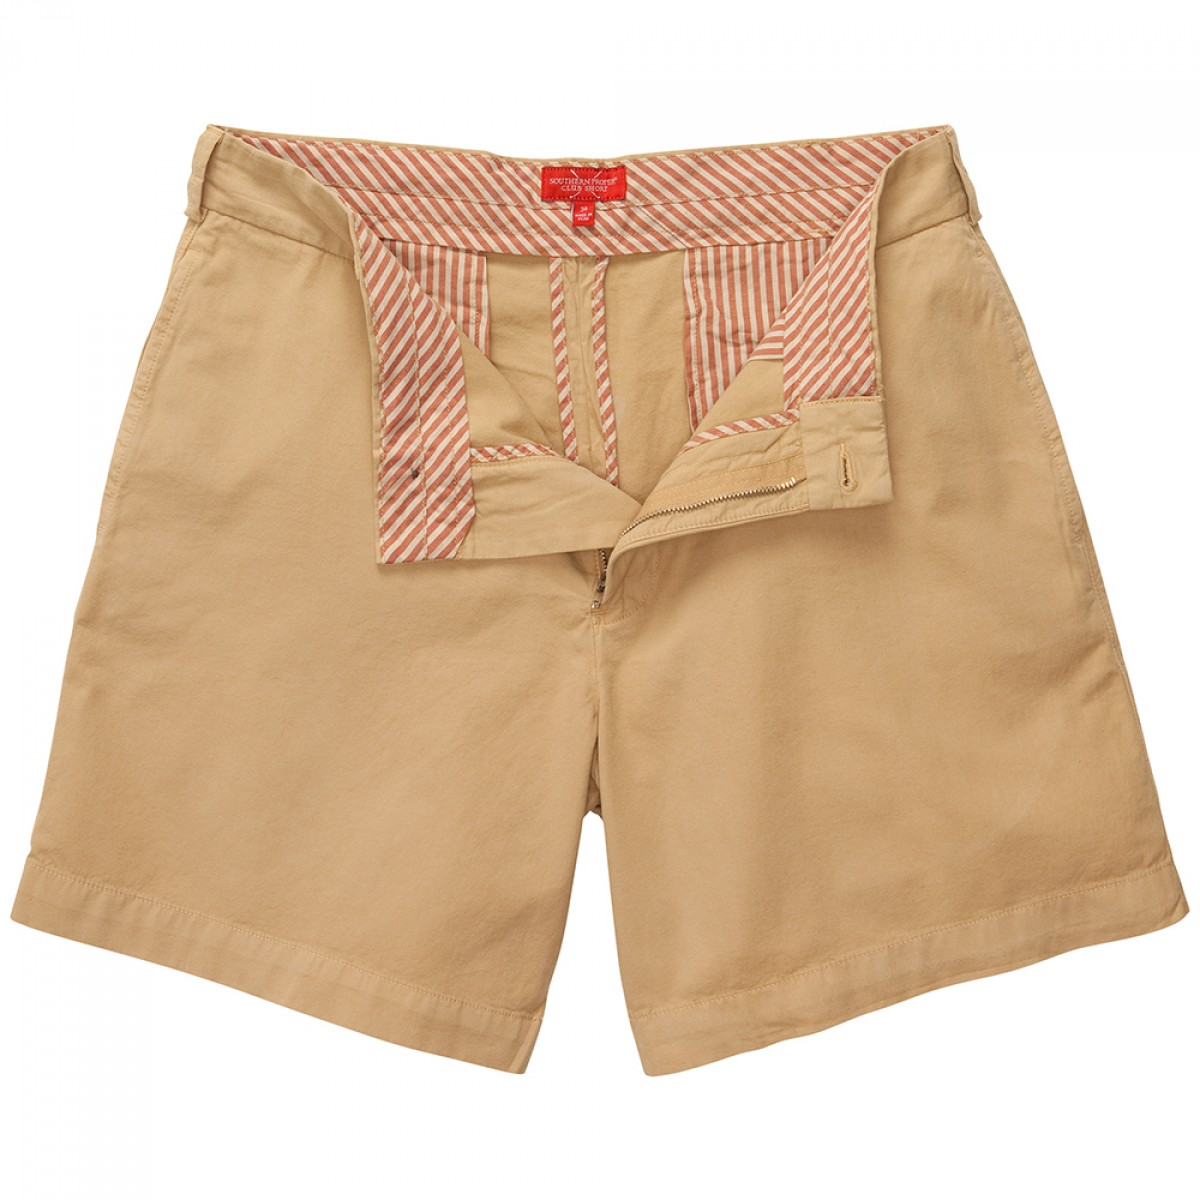 Club Short: Khaki